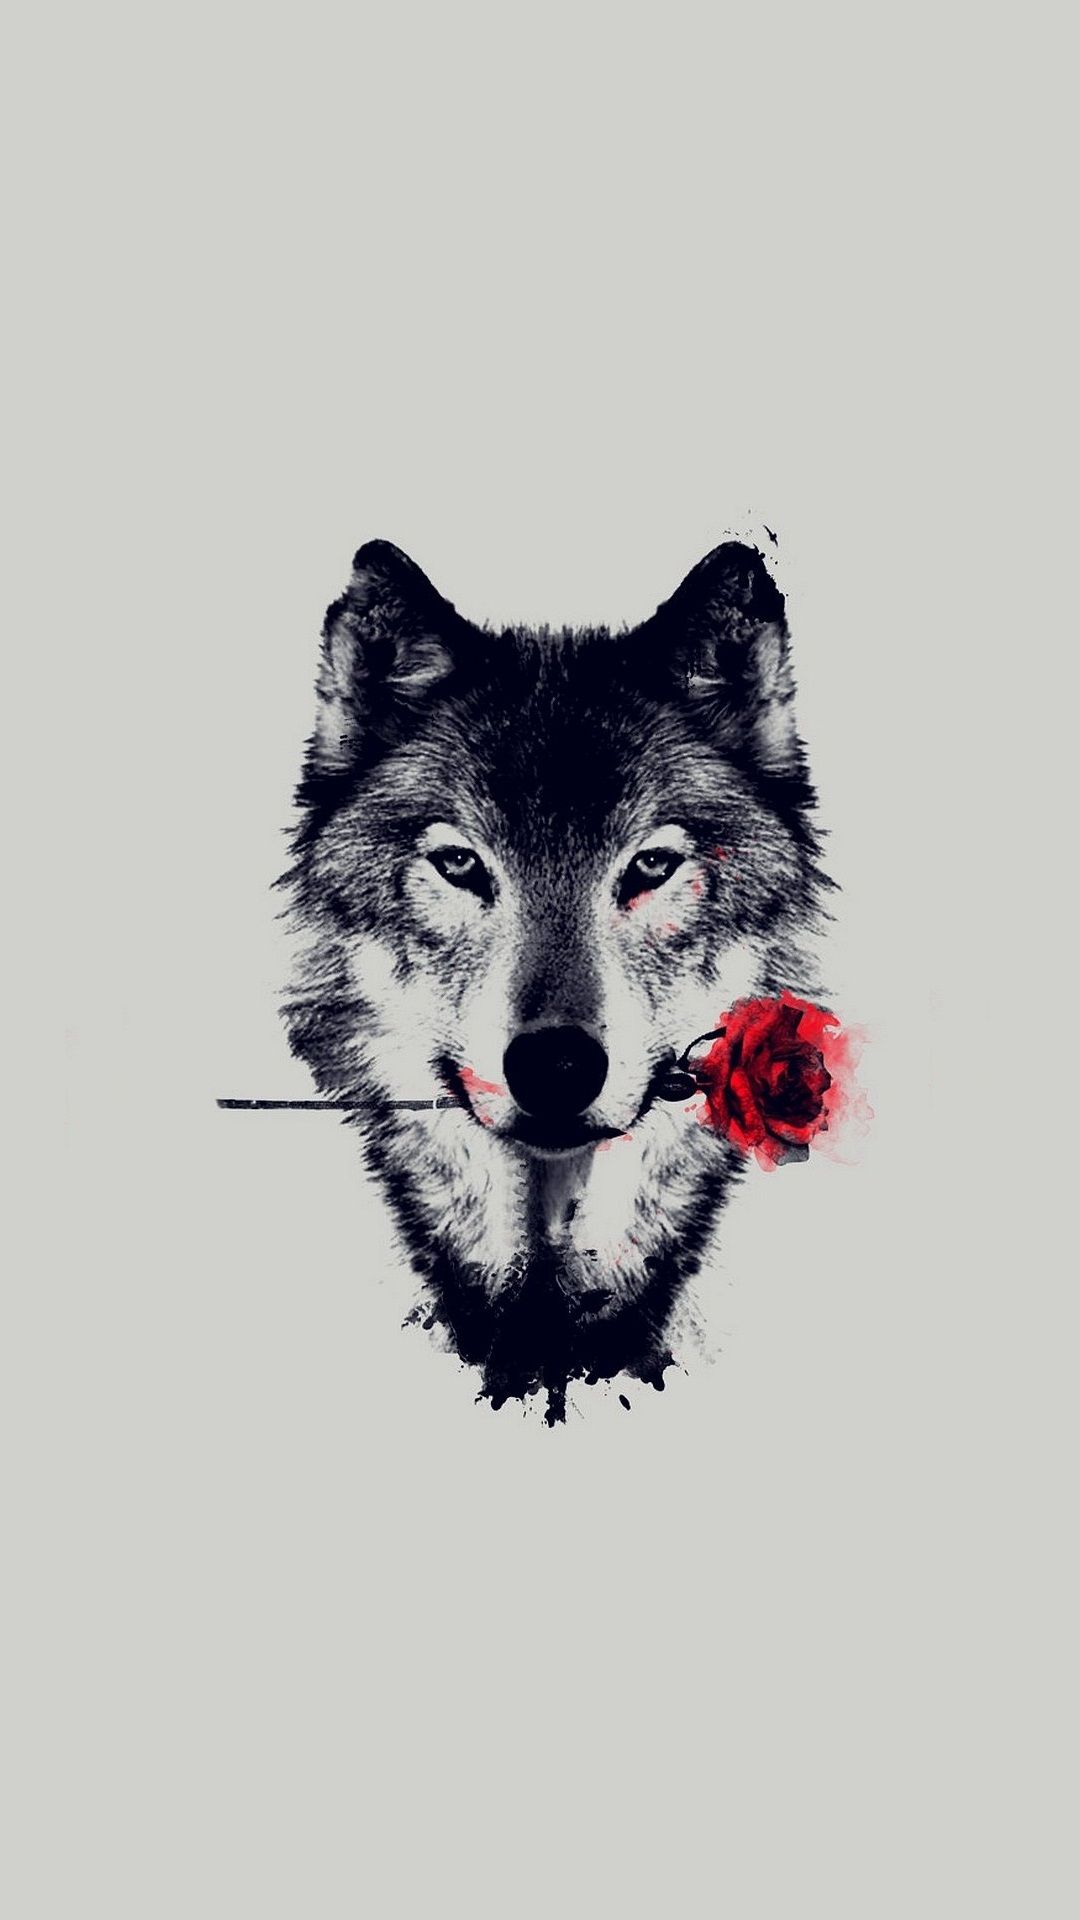 Wolf Red Rose Art Wallpaper iPhone is high definition ...